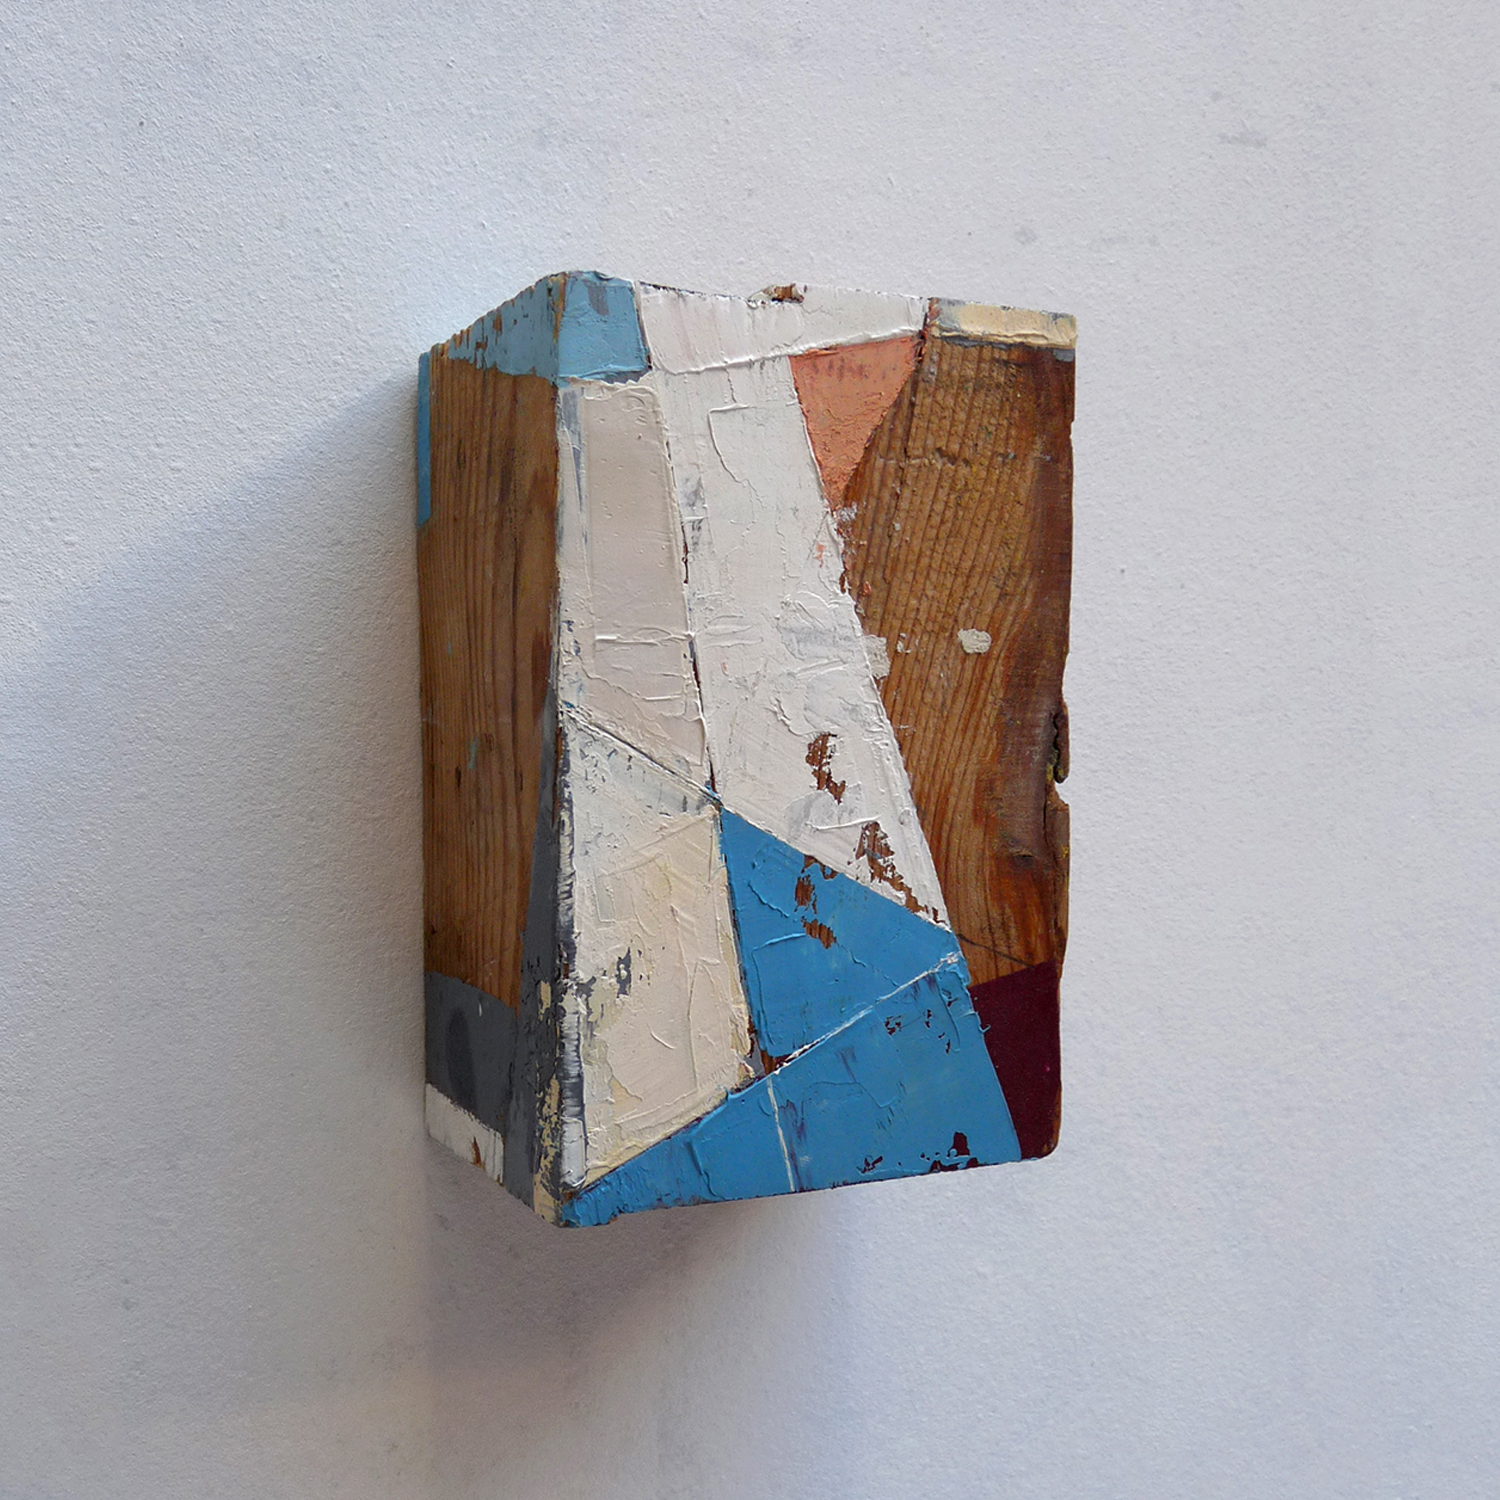 Taquiño D  Oil on wood  4 x 6 x 3 inches 9.5 x 14.5 x 7 cm 2018